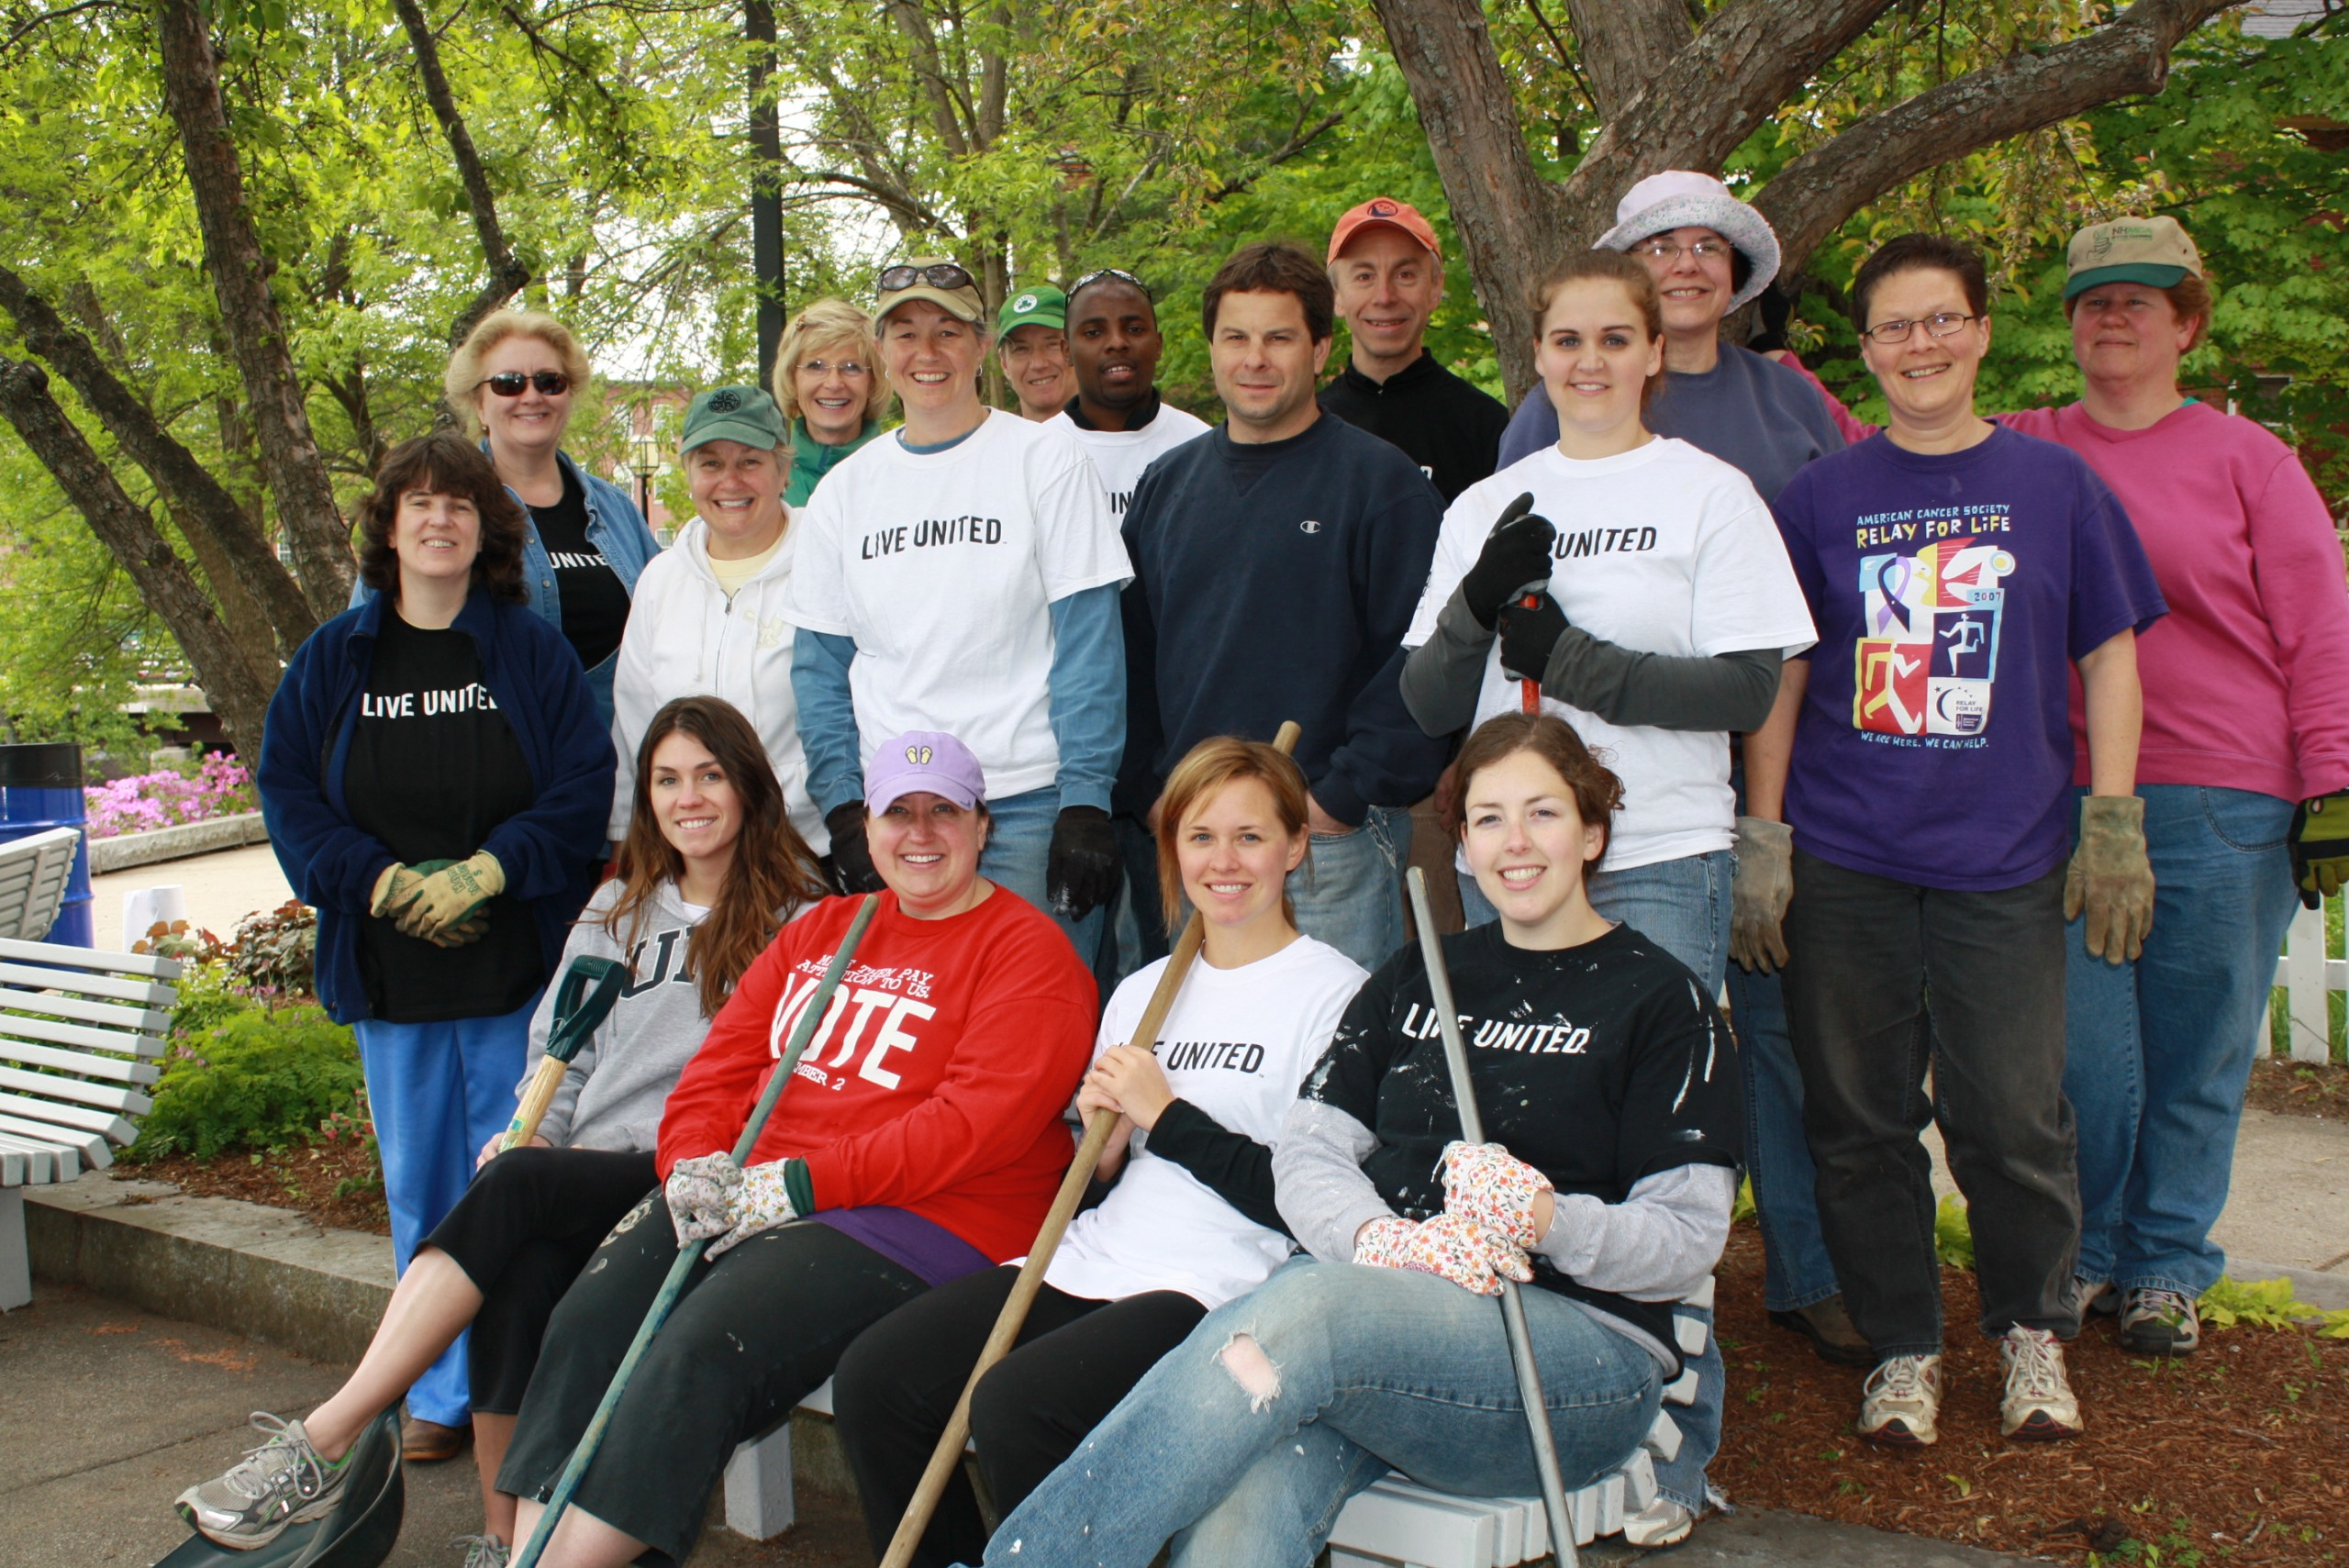 dover-clean-up-day-april-17-2010-018